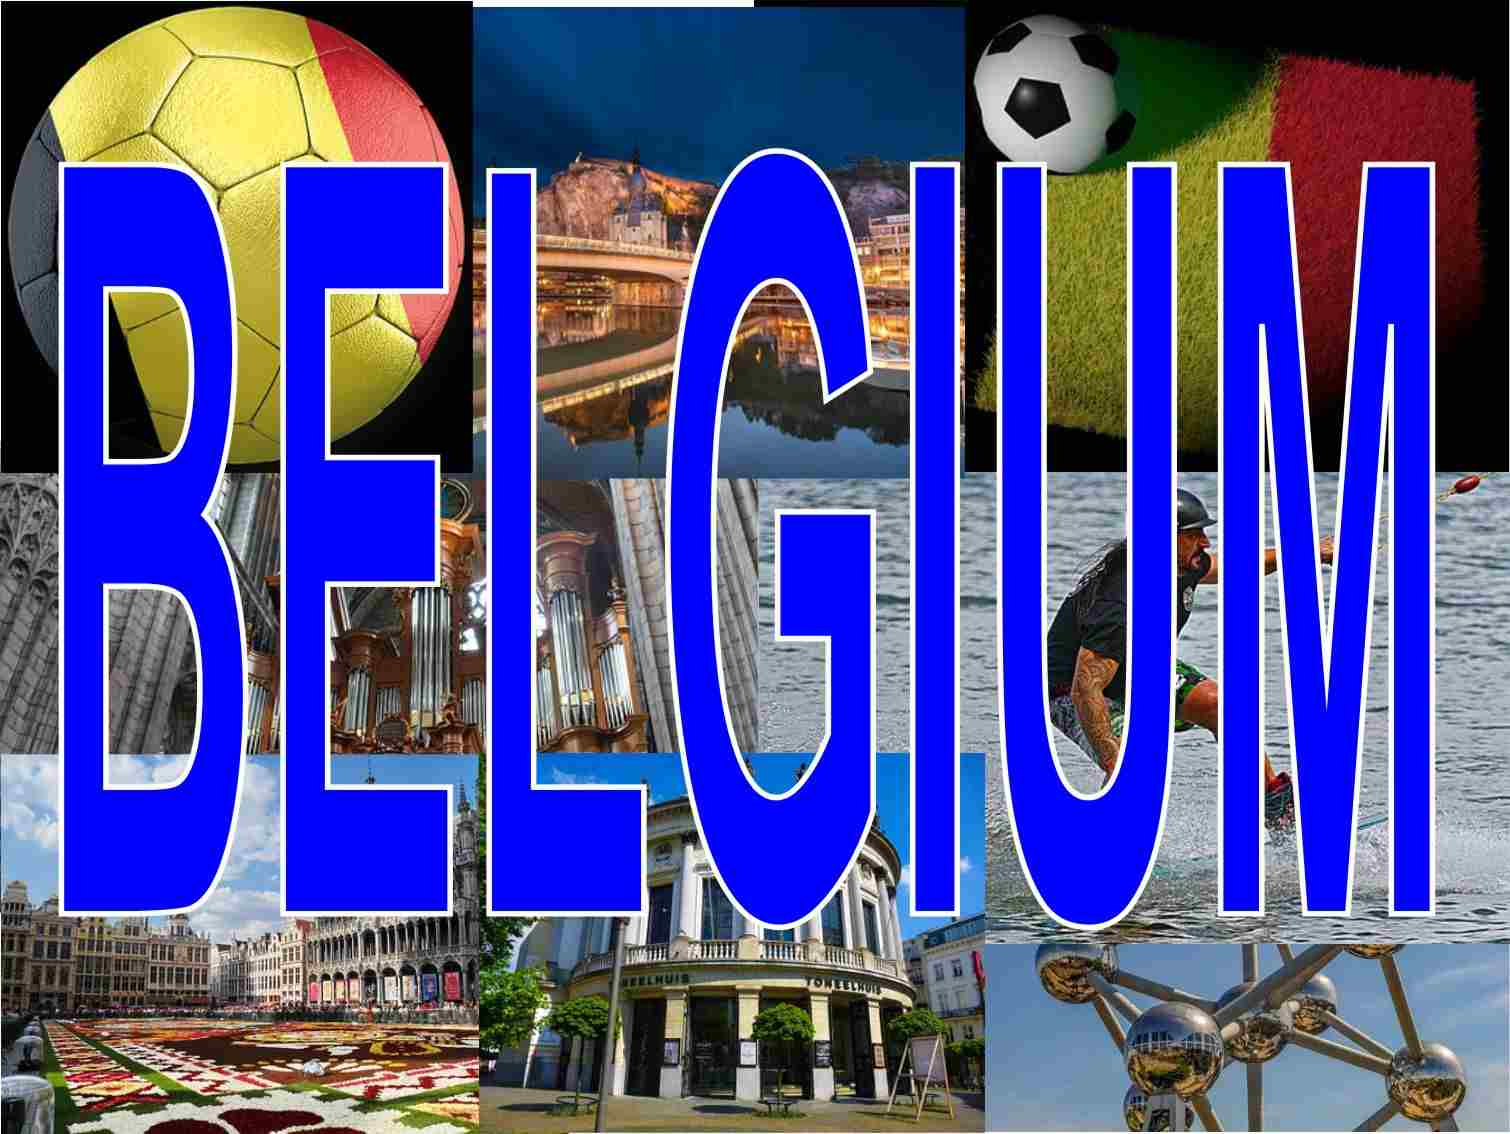 Belgium: what to see in different cities, what are they